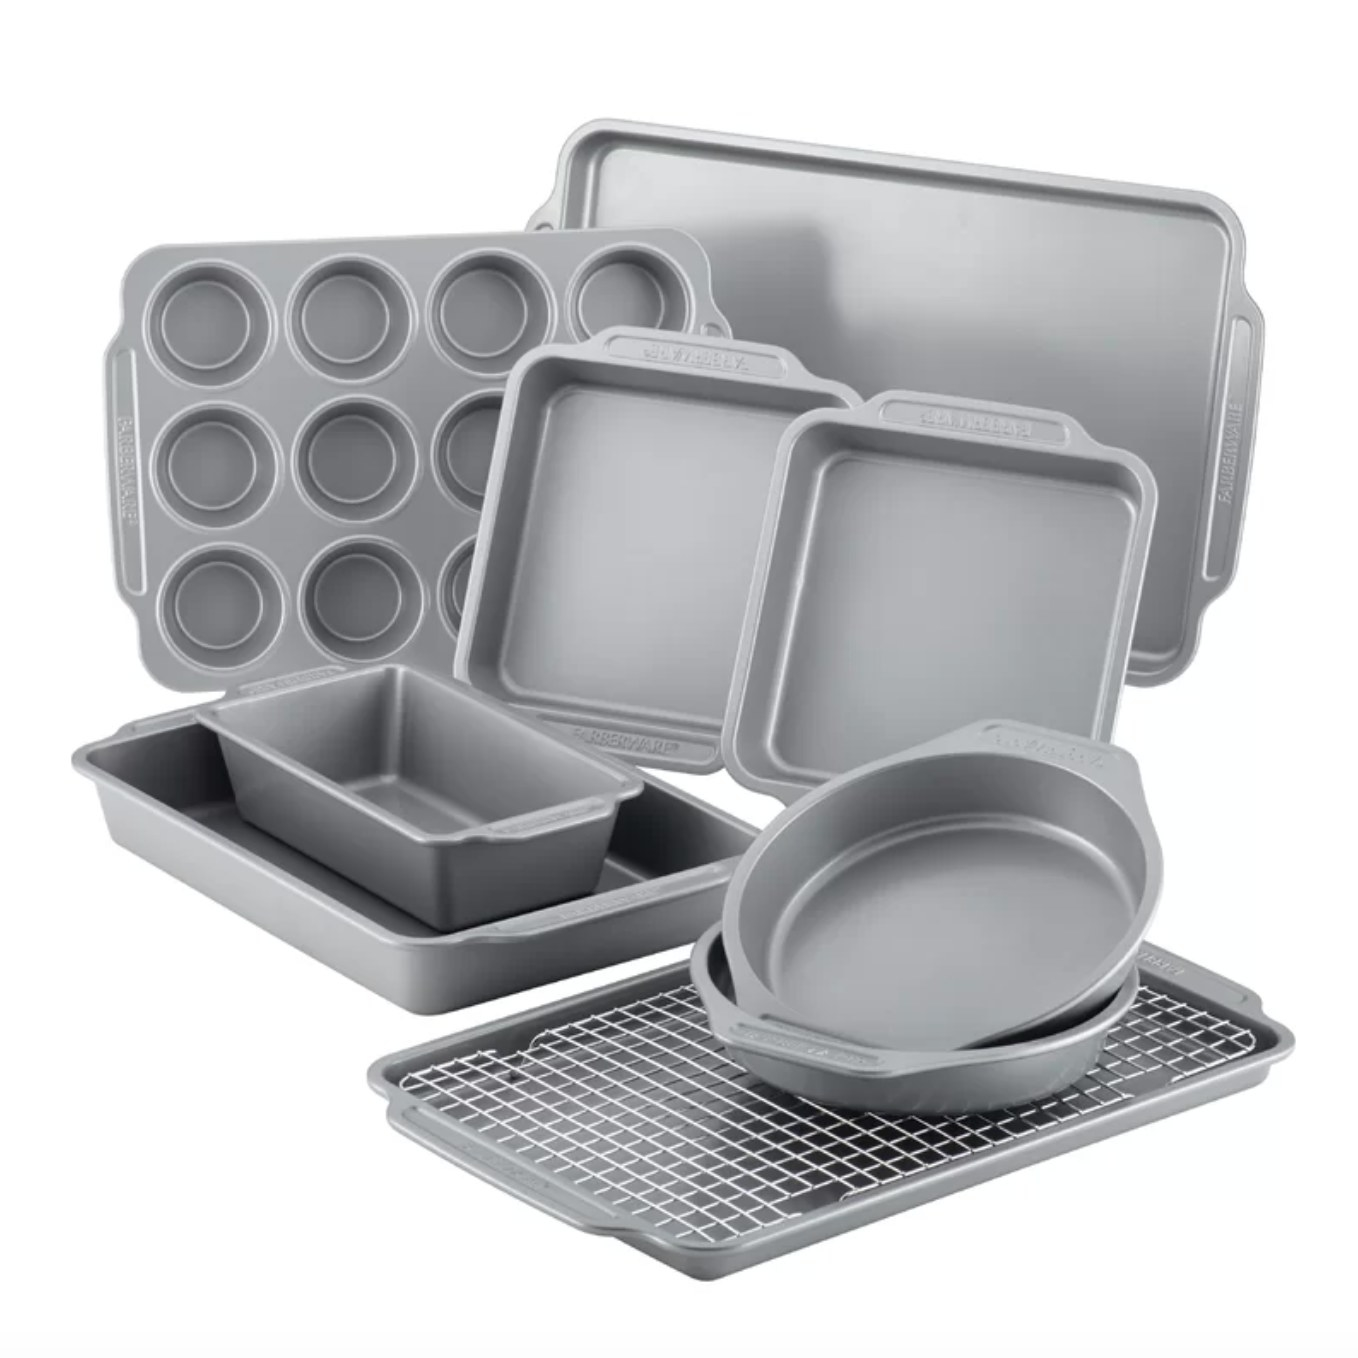 The baking set with all ten items displayed